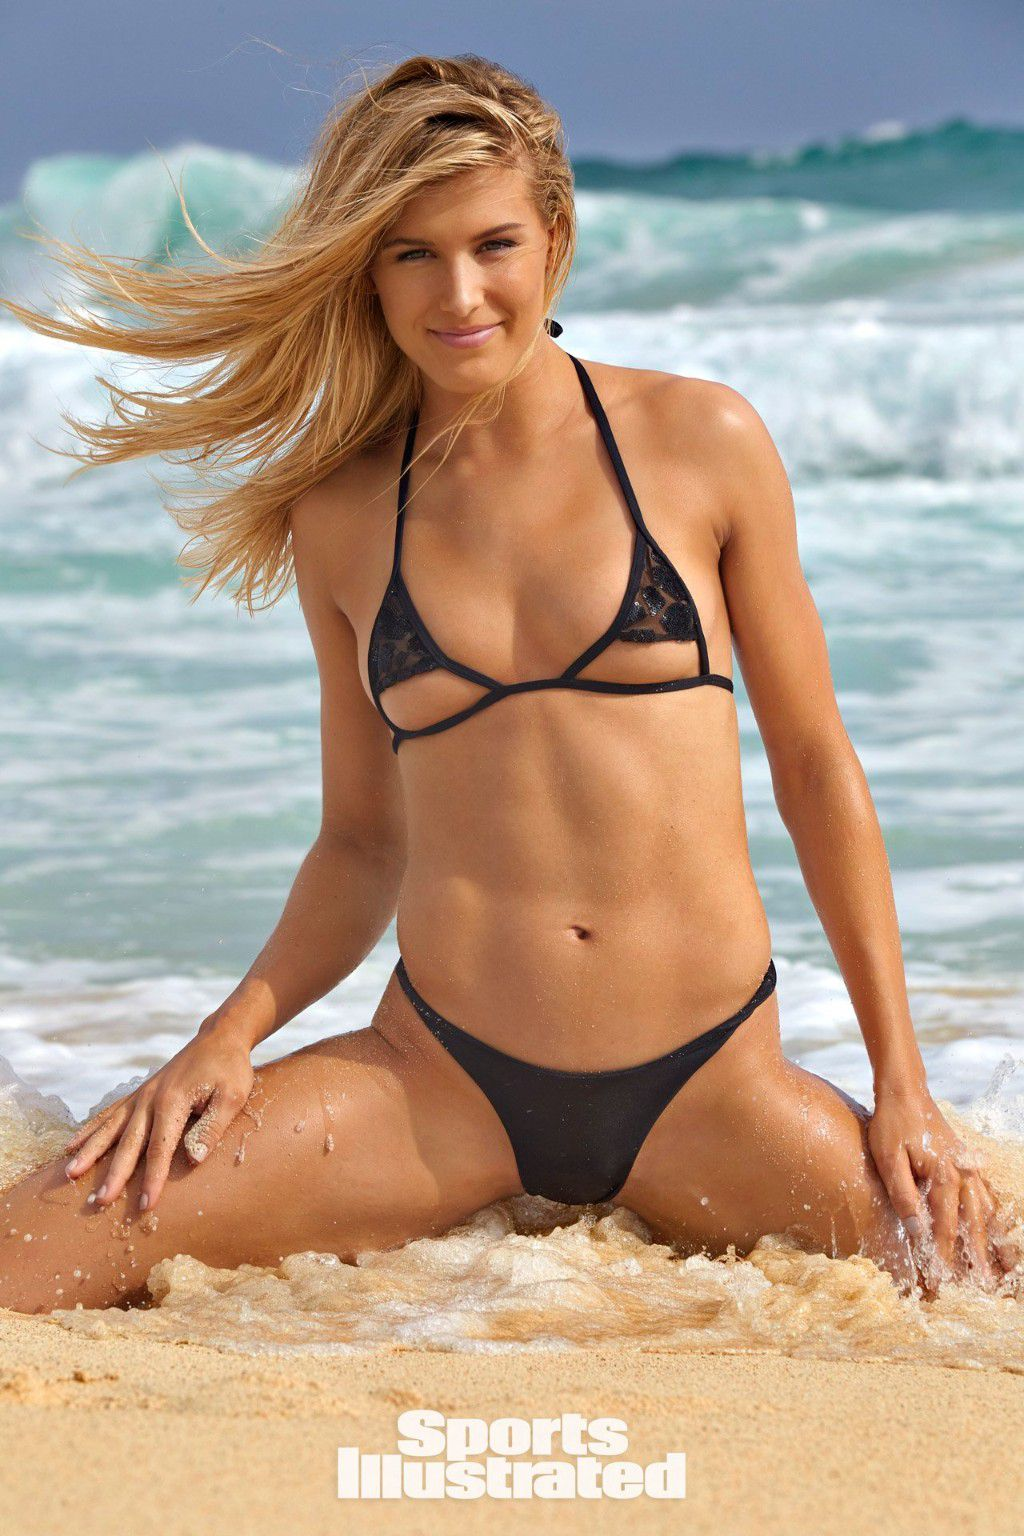 eugenie-bouchard-super-sexy-in-sports-illustrated-swimsuit-issue-2018-1